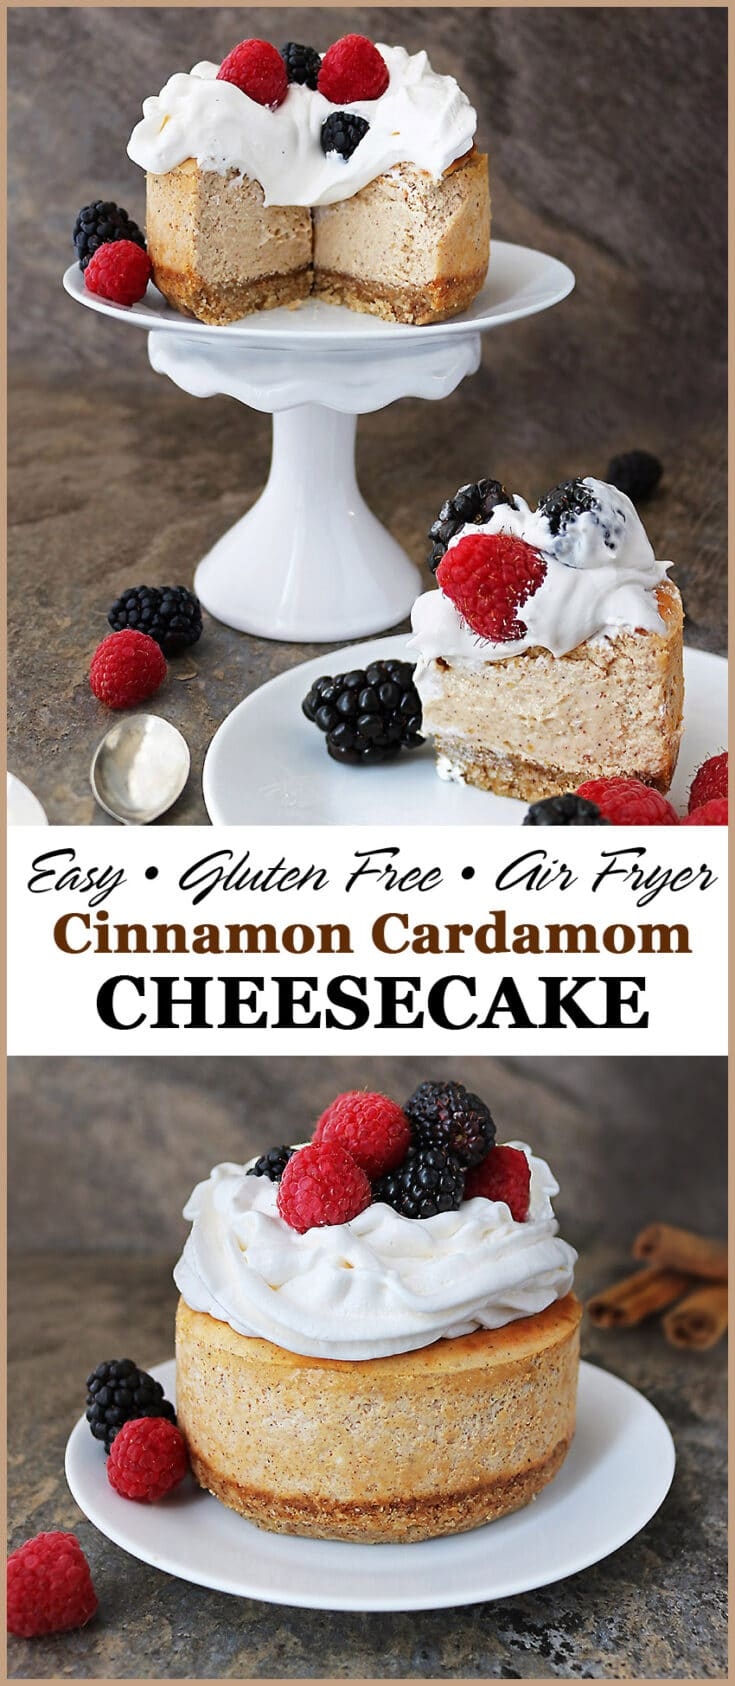 Sitting on a cinnamon and cardamom flavored almond base, this easy, gluten free, mini, Air Fryer Cinnamon Cardamom Cheesecake is deliciously creamy ~ serve it up with fresh berries and whip cream for a treat your family and friends will love.